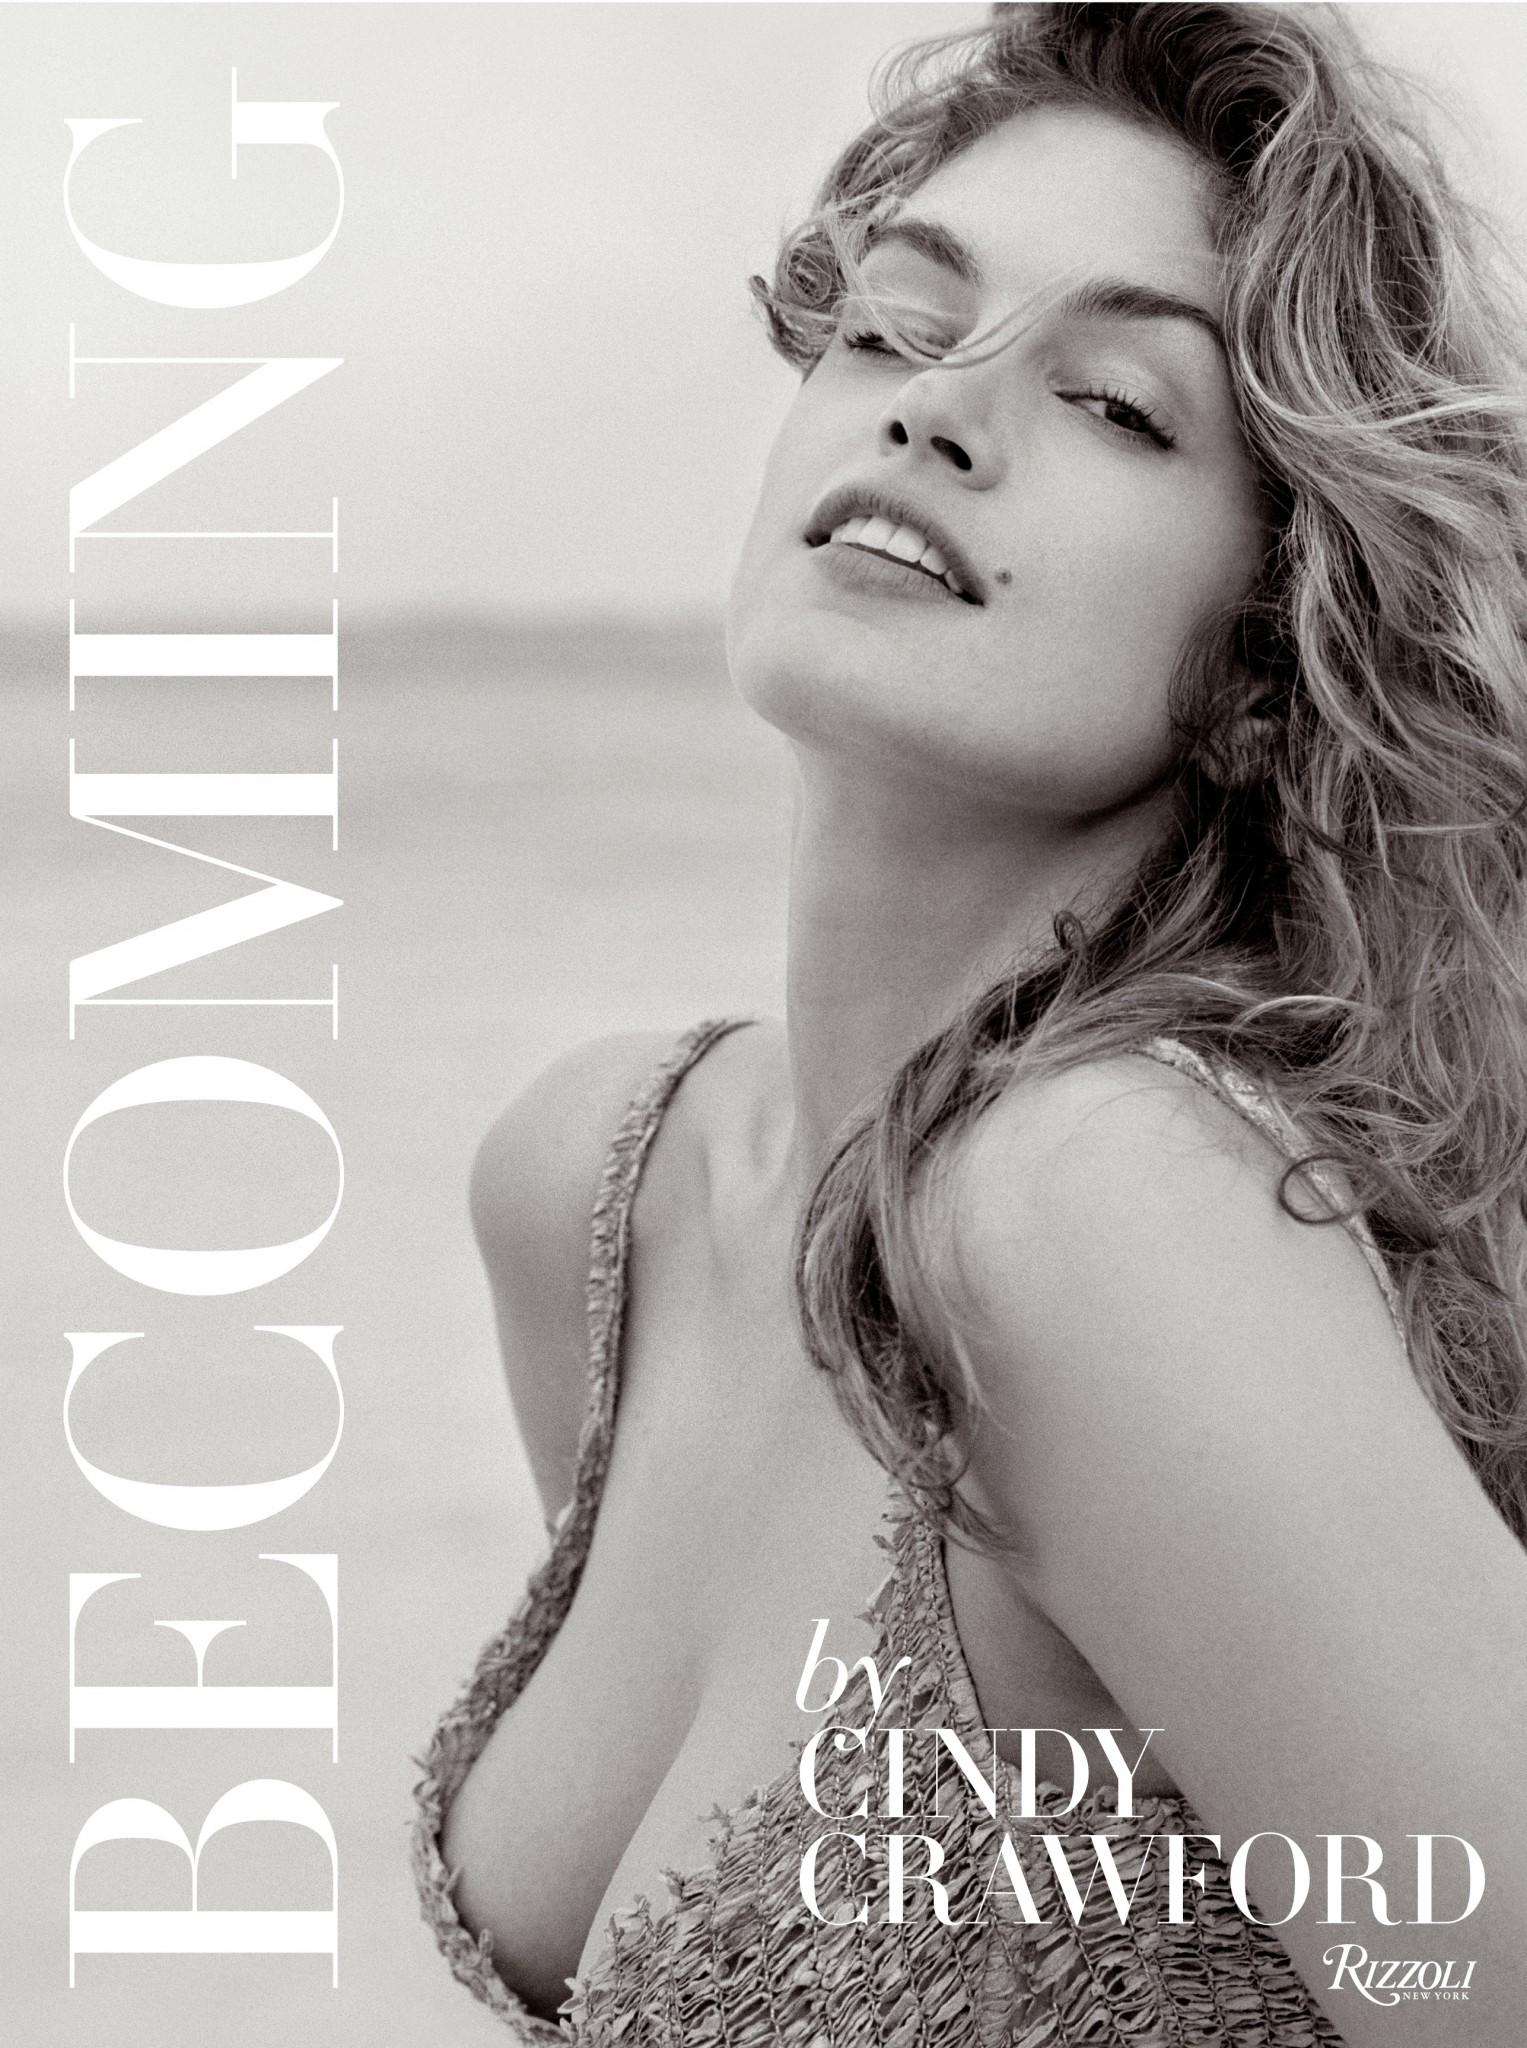 The cover of Cindy Crawford's book Becoming